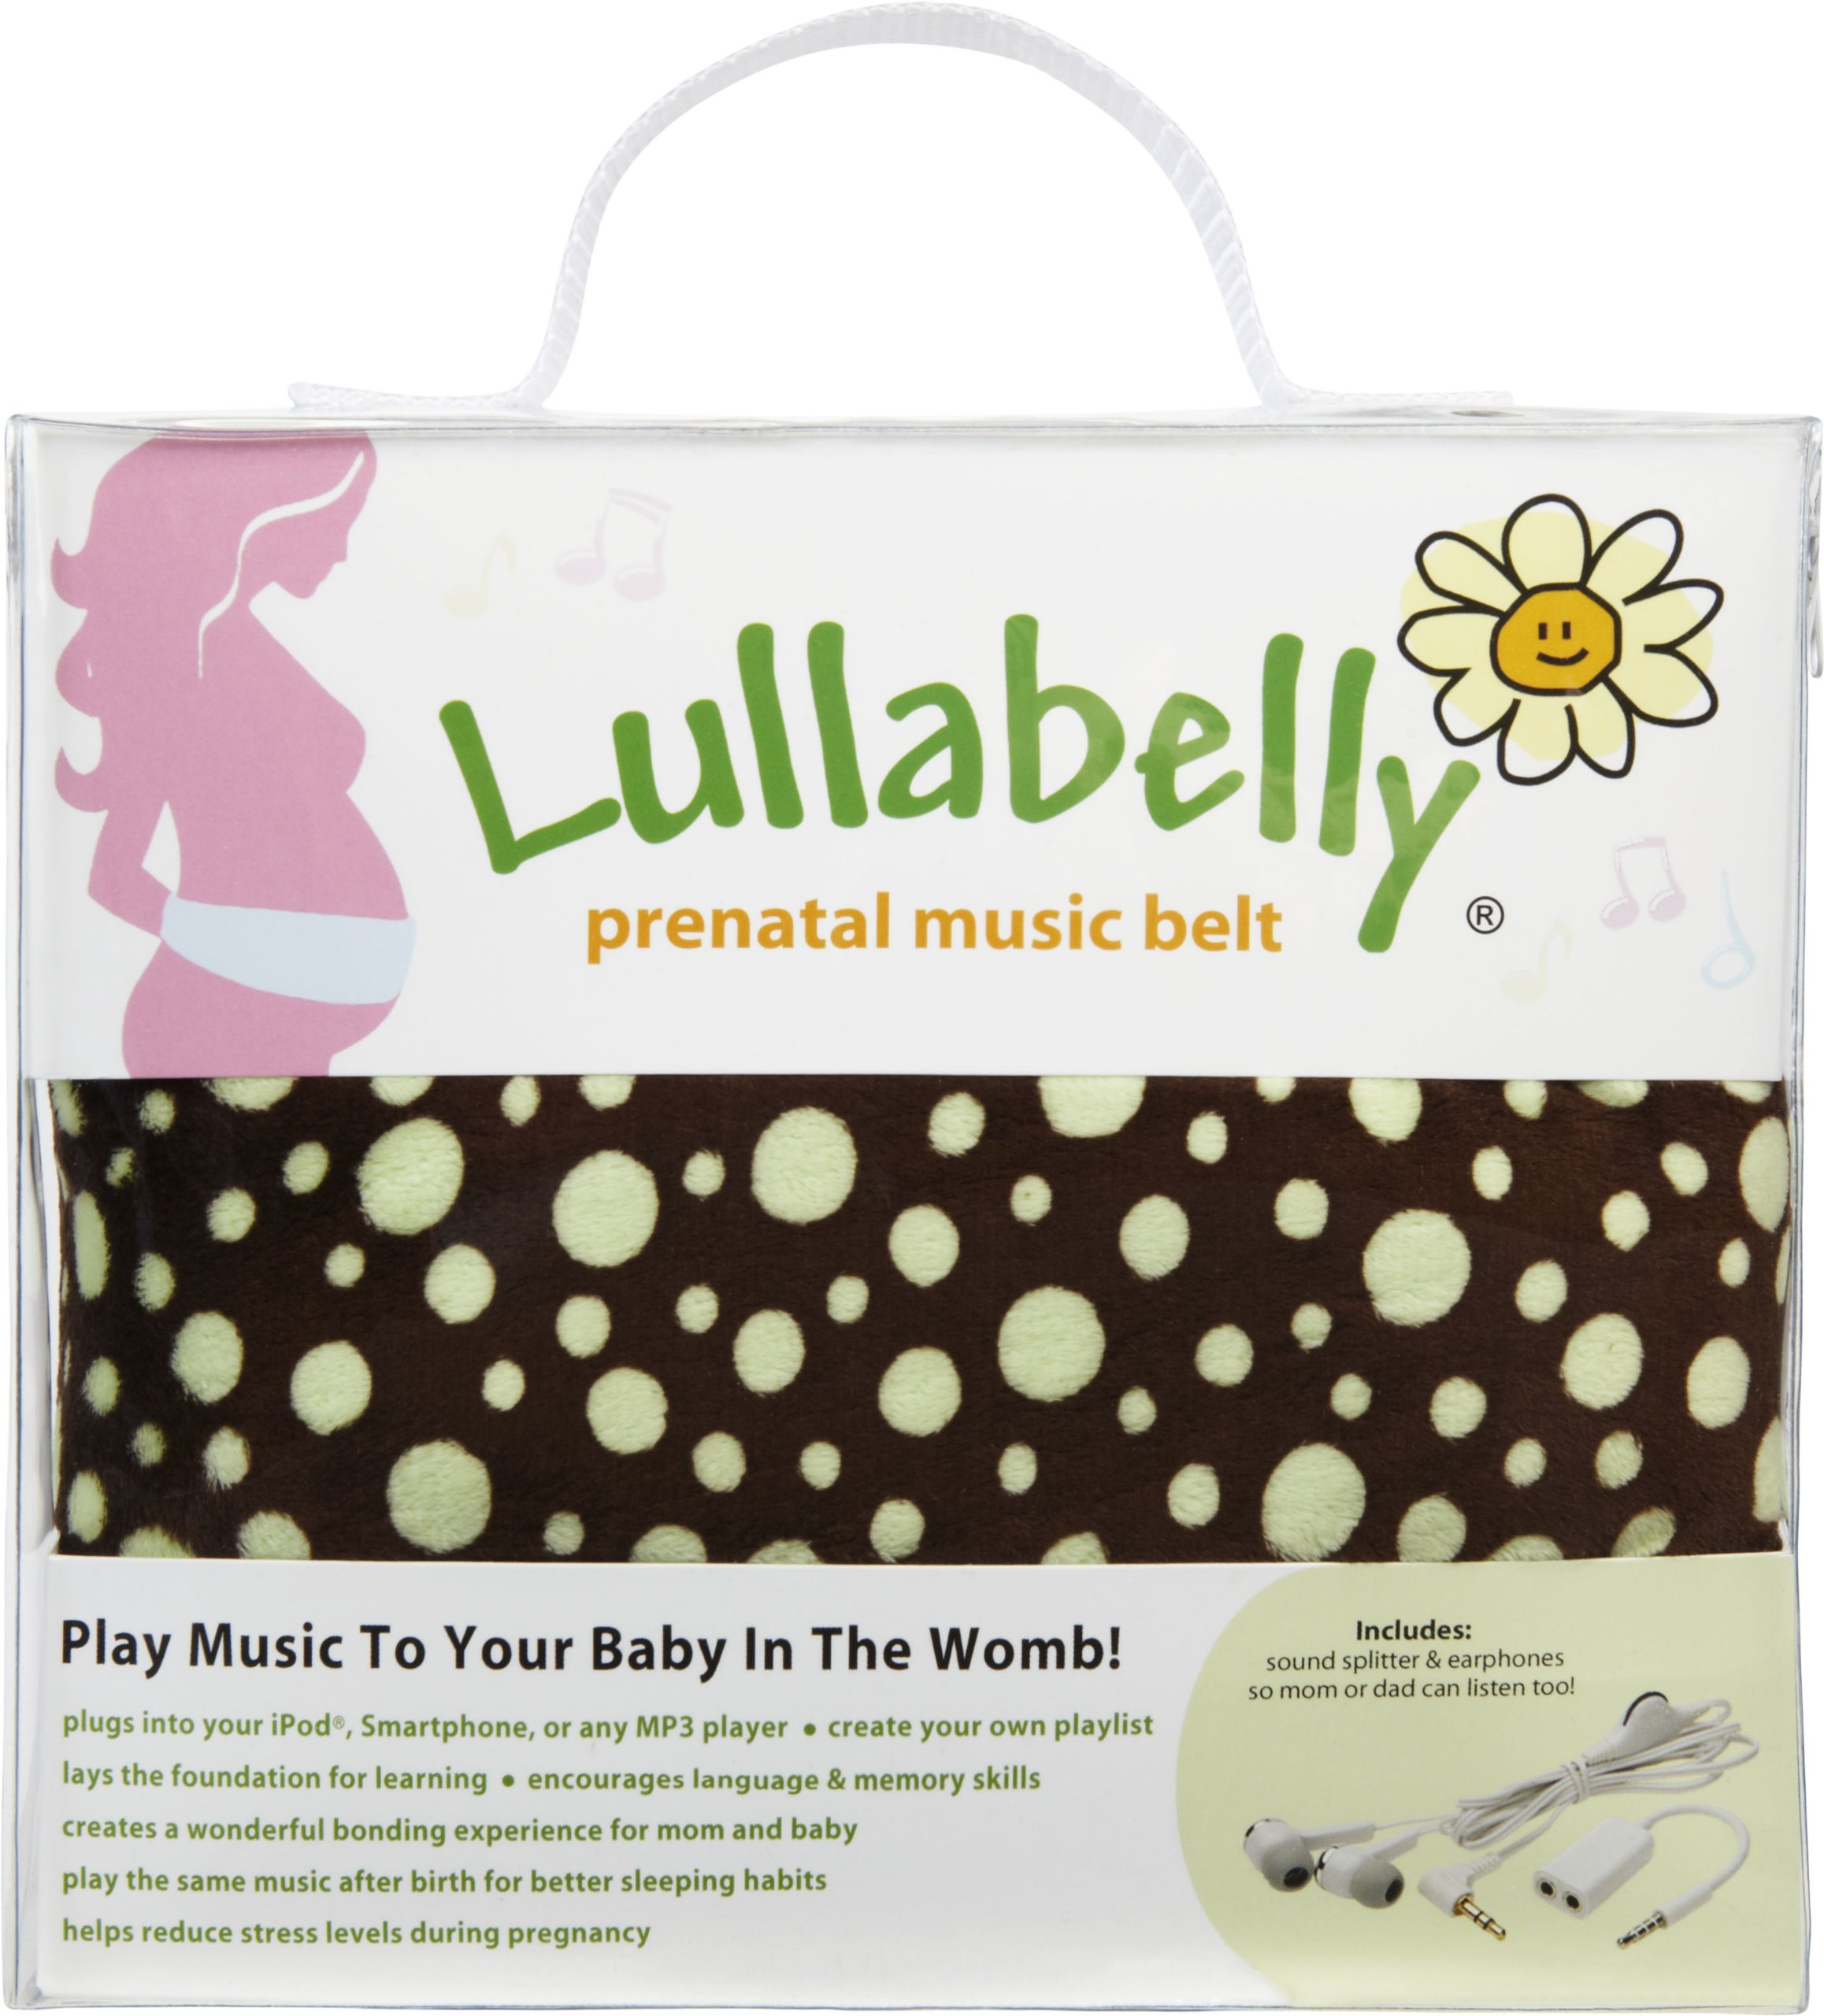 Lullabelly Prenatal Music Belt Deluxe Package by Lullabelly (Image #1)